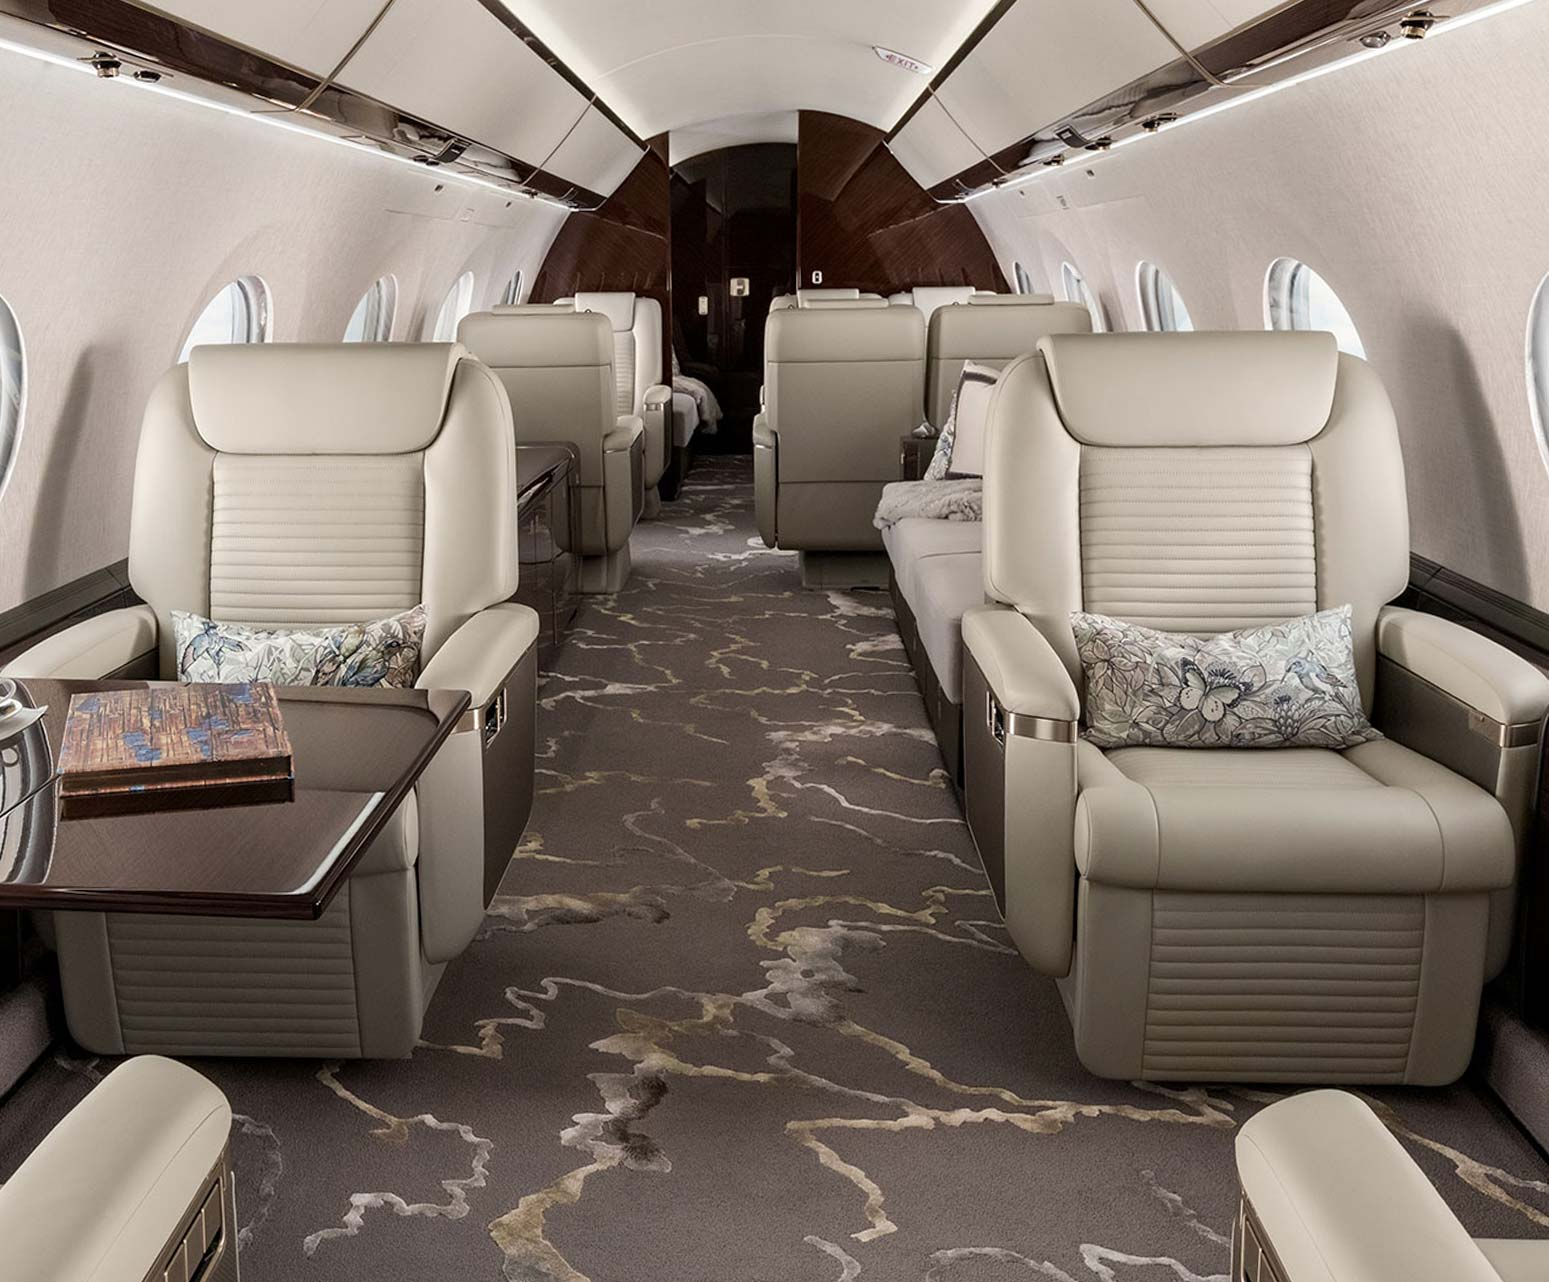 G650ER aircraft interior with seats.